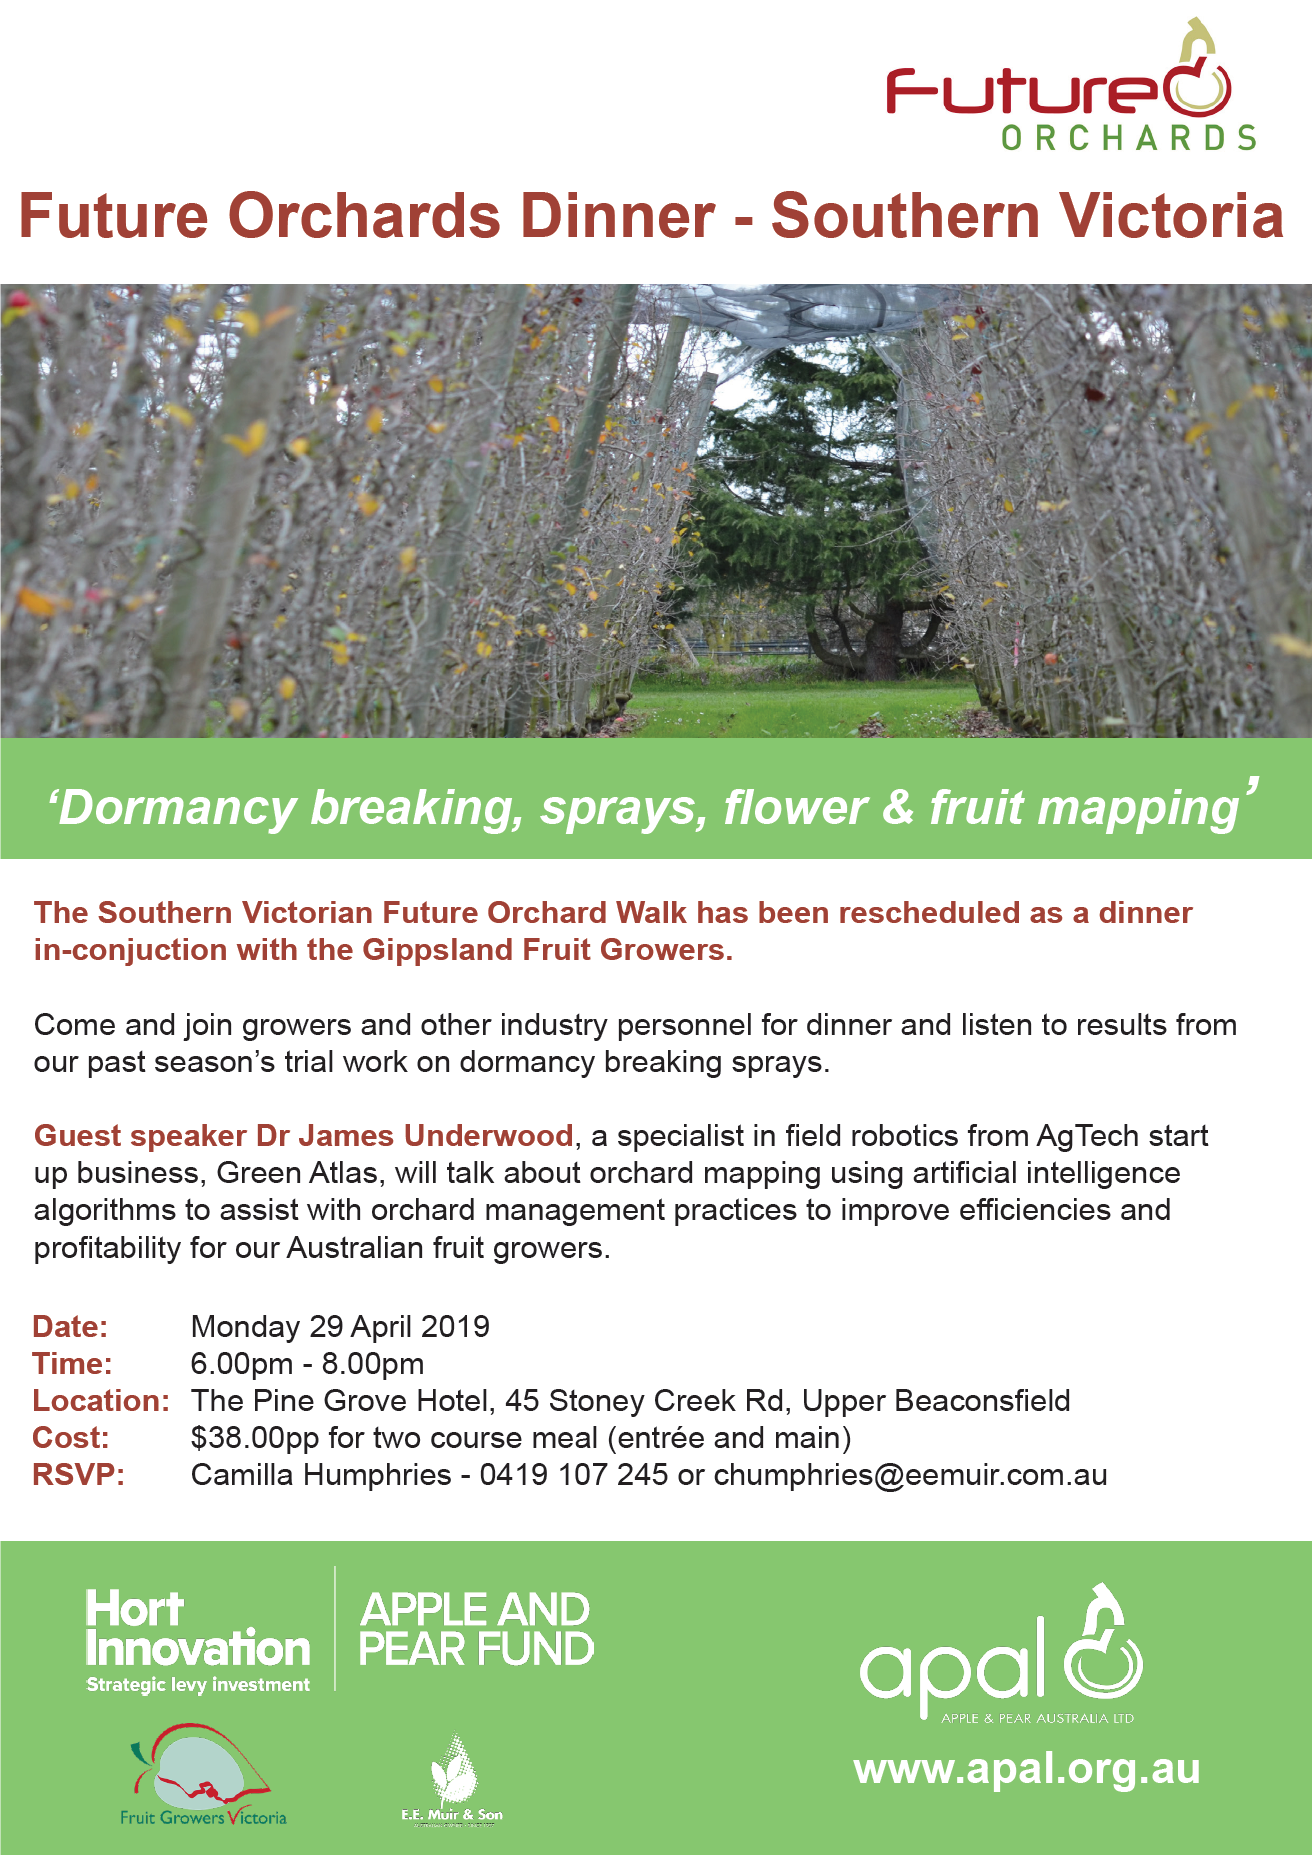 Southern Victoria Future Orchard Dinner April 2019 flyer